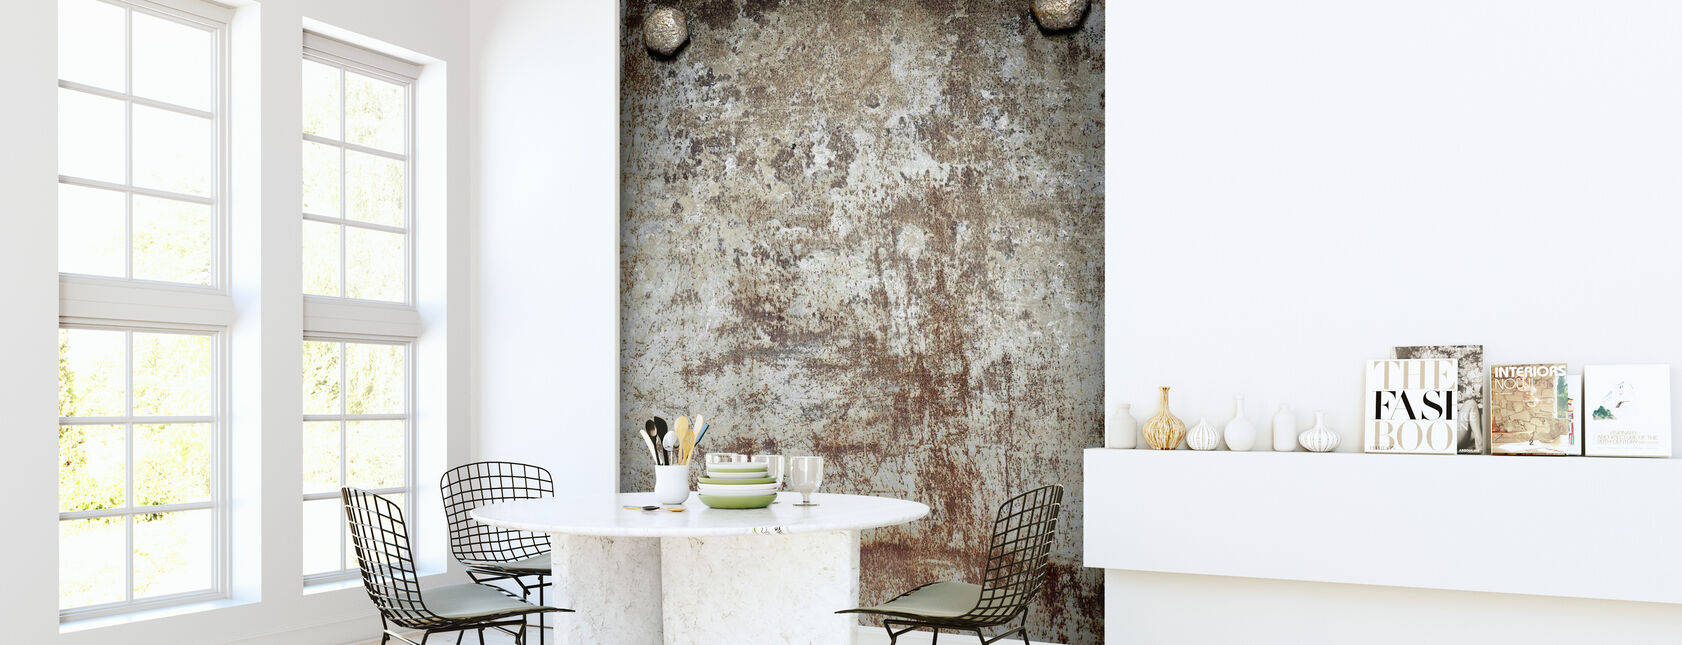 Bolted Steel Plate - Wallpaper - Kitchen